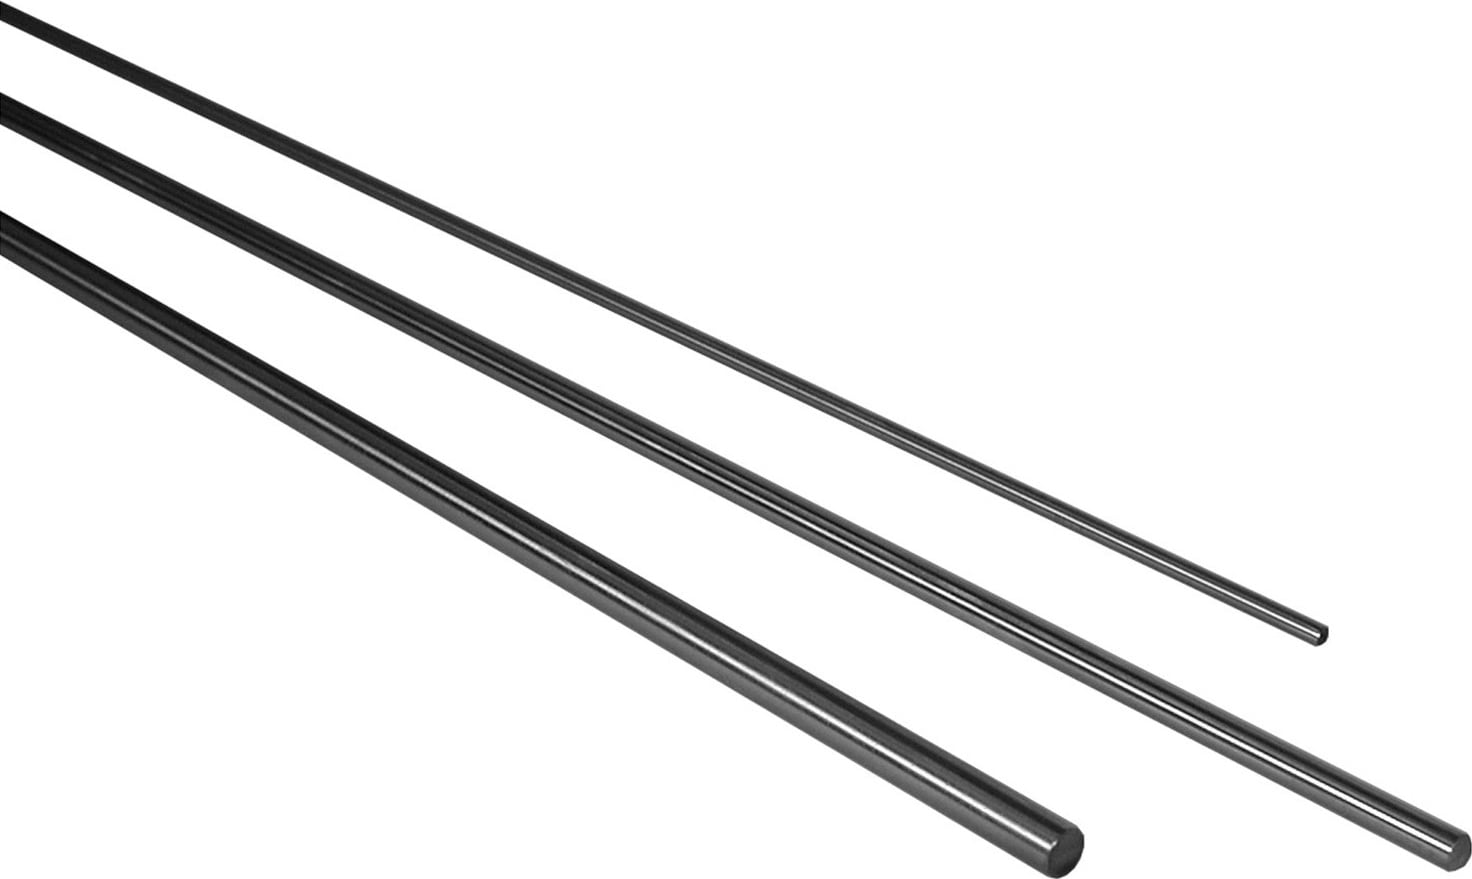 O-1 Oil Hardening Drill Rod... Value Collection 1-1//16 Inch Diameter Tool Steel